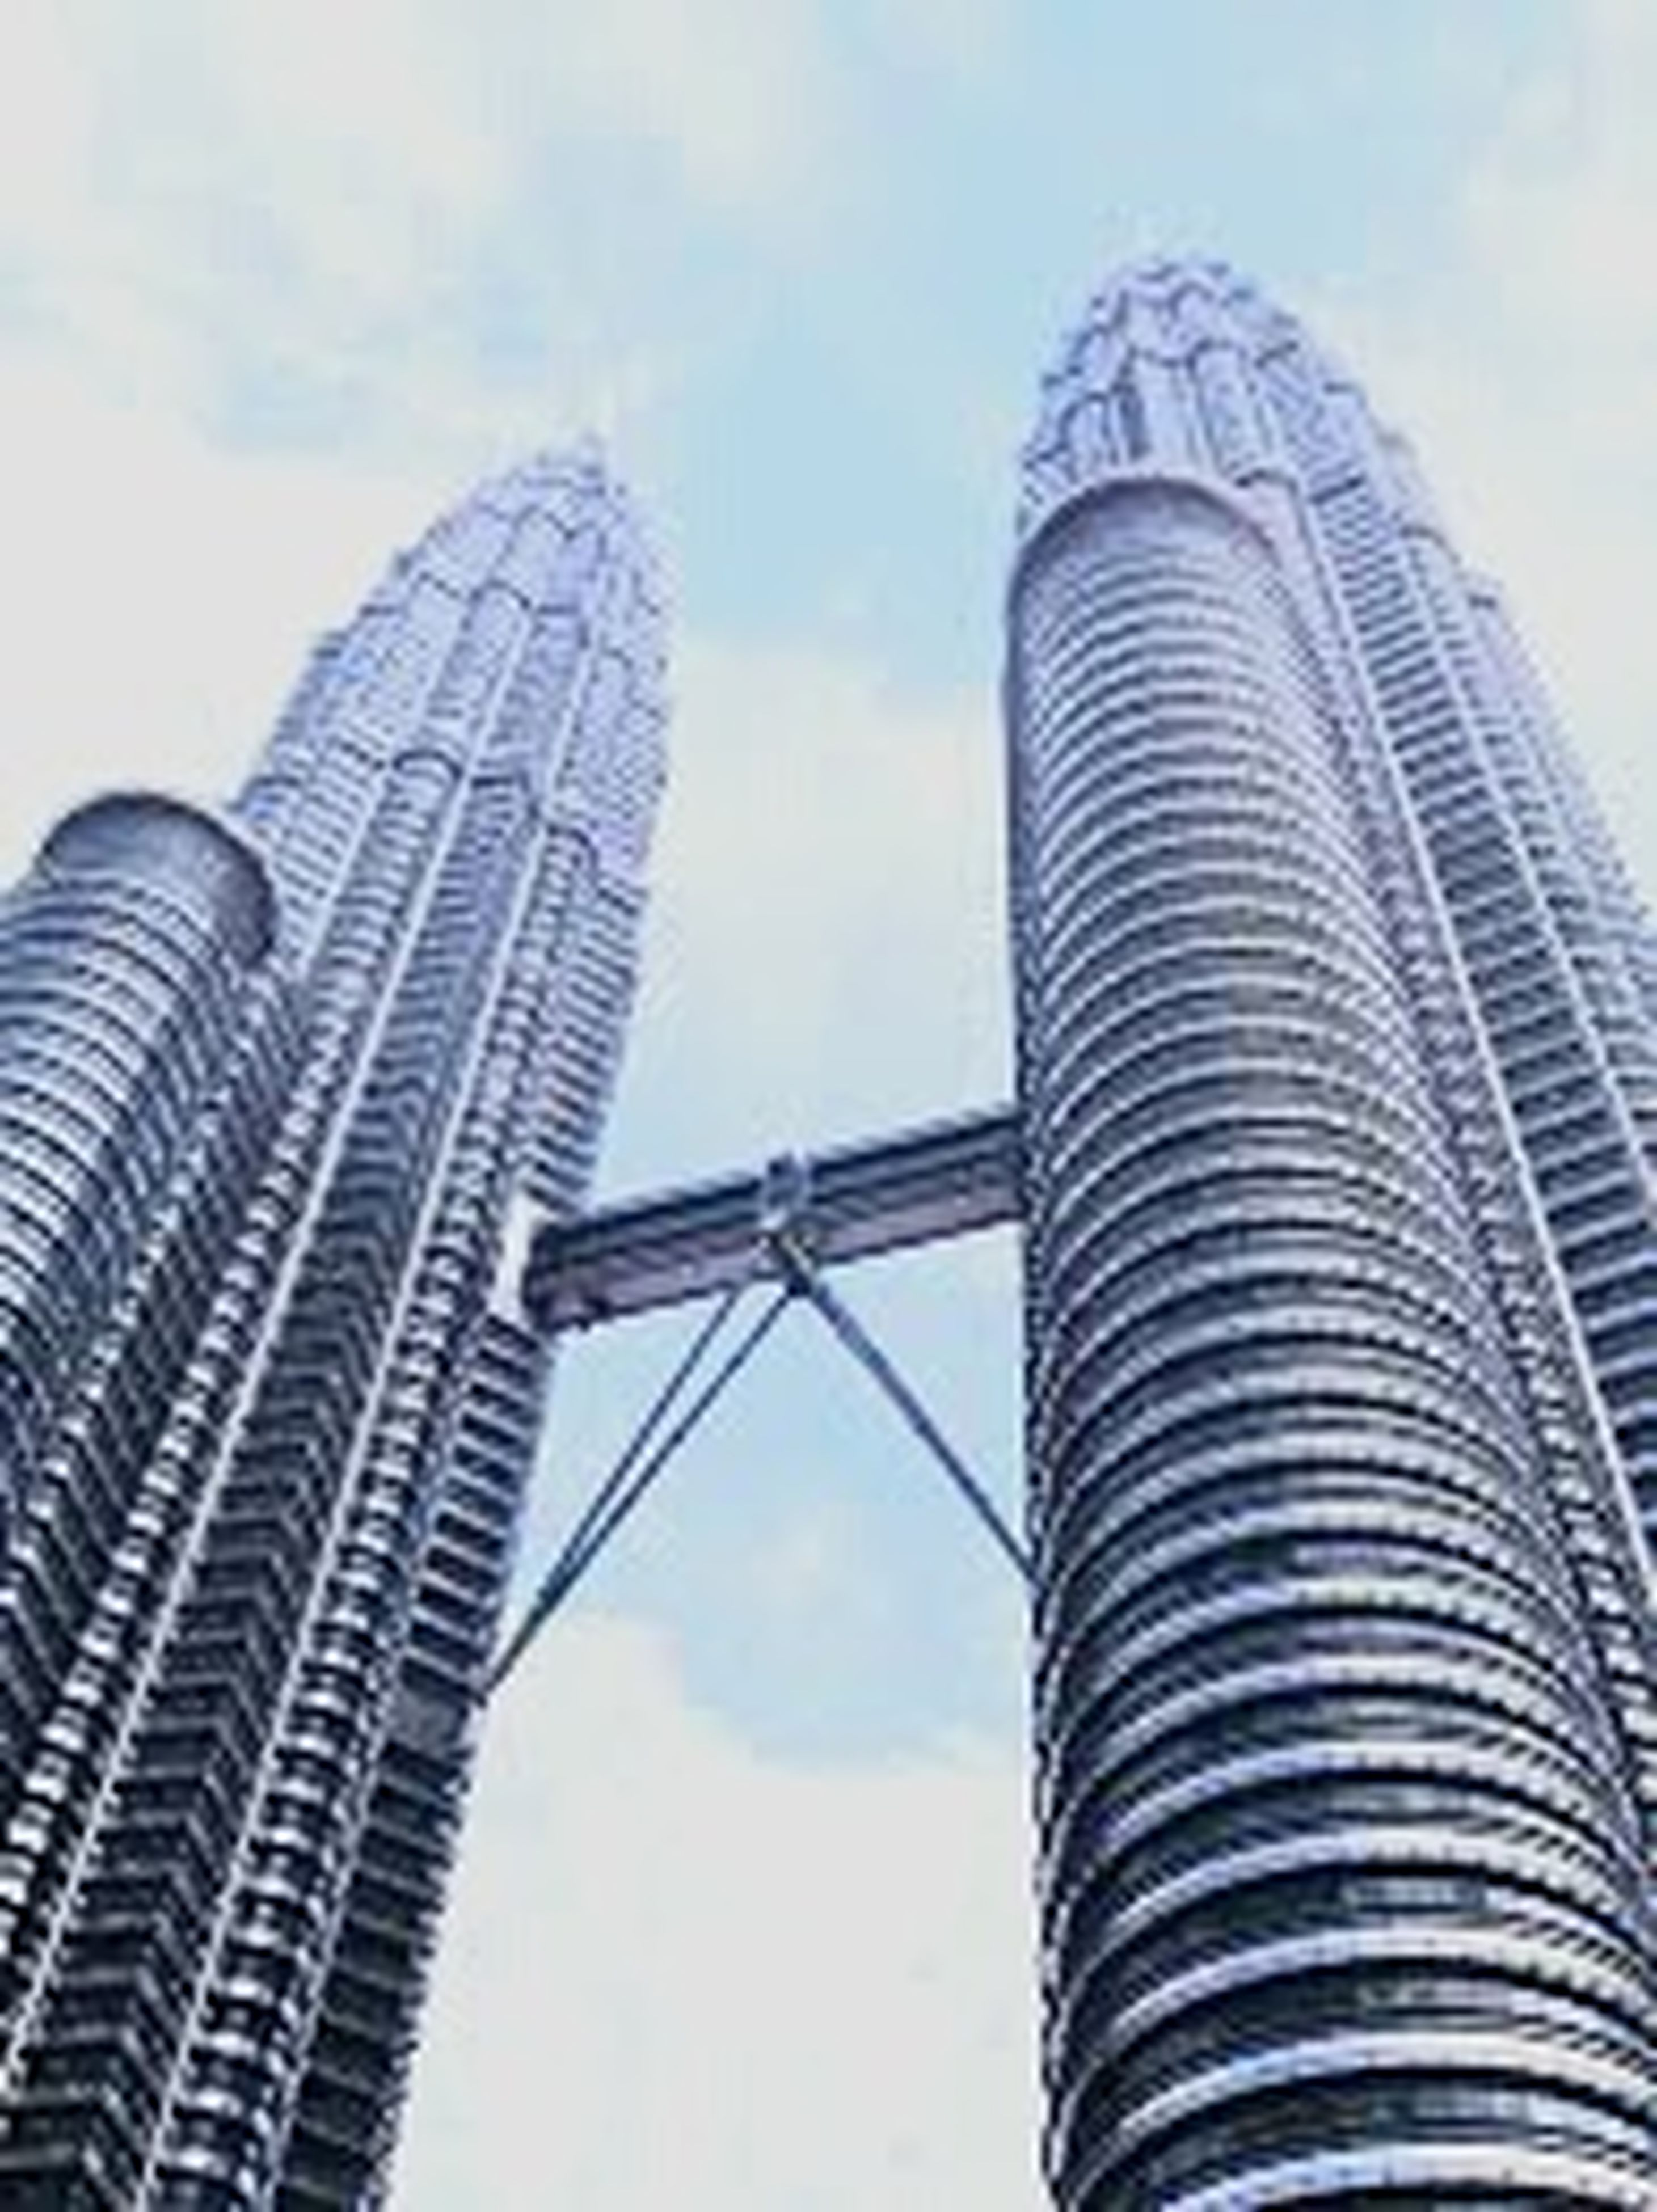 low angle view, architecture, built structure, tall - high, building exterior, skyscraper, tower, modern, city, sky, office building, capital cities, famous place, travel destinations, international landmark, cloud - sky, glass - material, tall, day, building